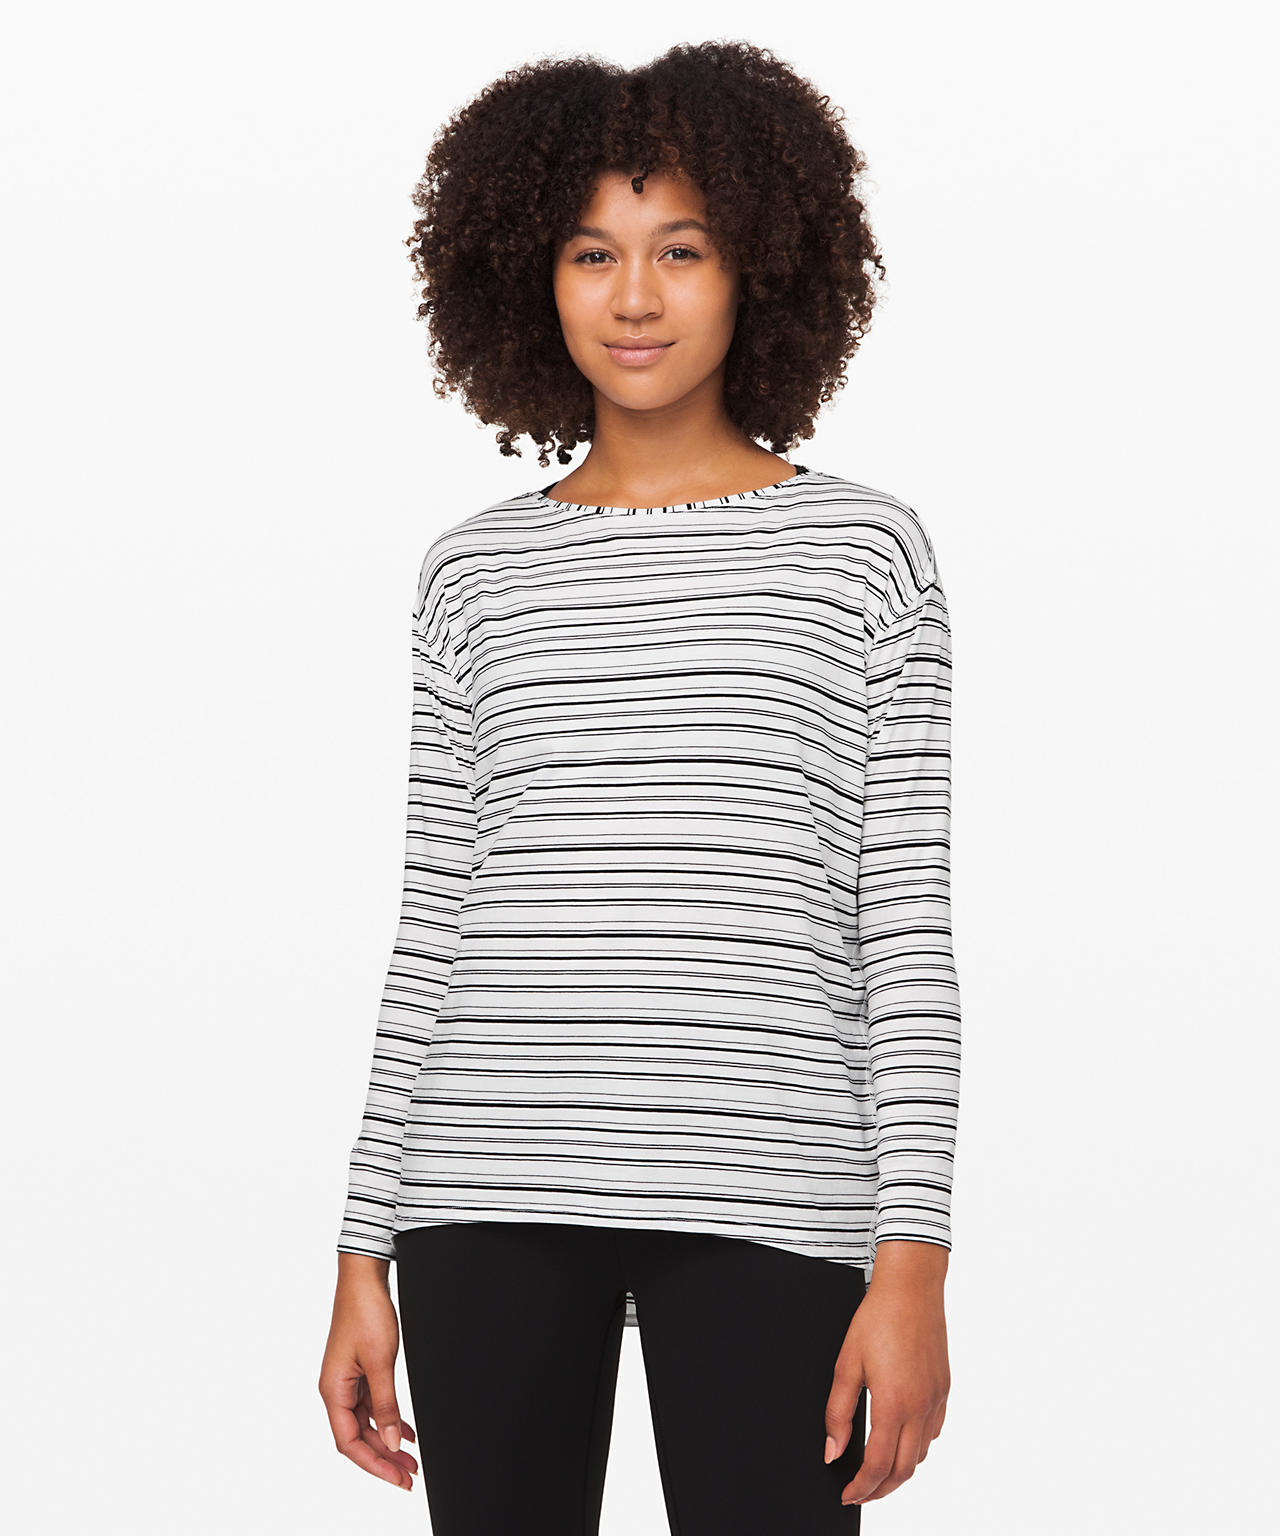 Lululemon Upload, Back In Action Long Sleeve